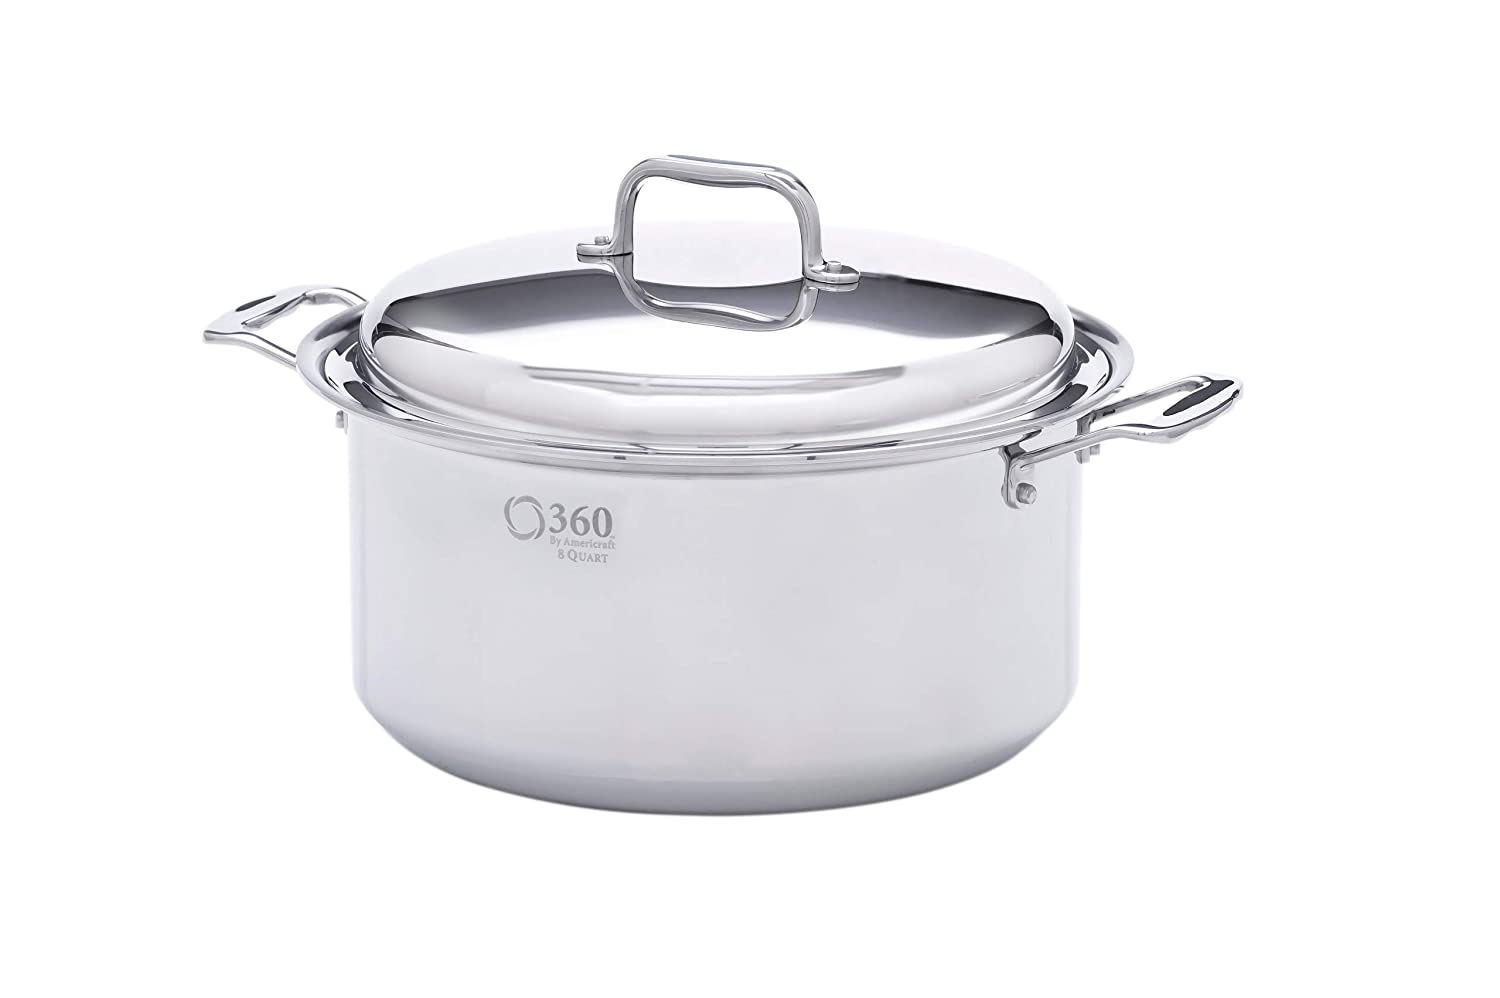 360 Stainless Steel Cookware 8 Quart Saucepan with Lid. American Made, Induction Cookware, Waterless Cookware, Dishwasher Safe, Oven Safe, Professional Grade